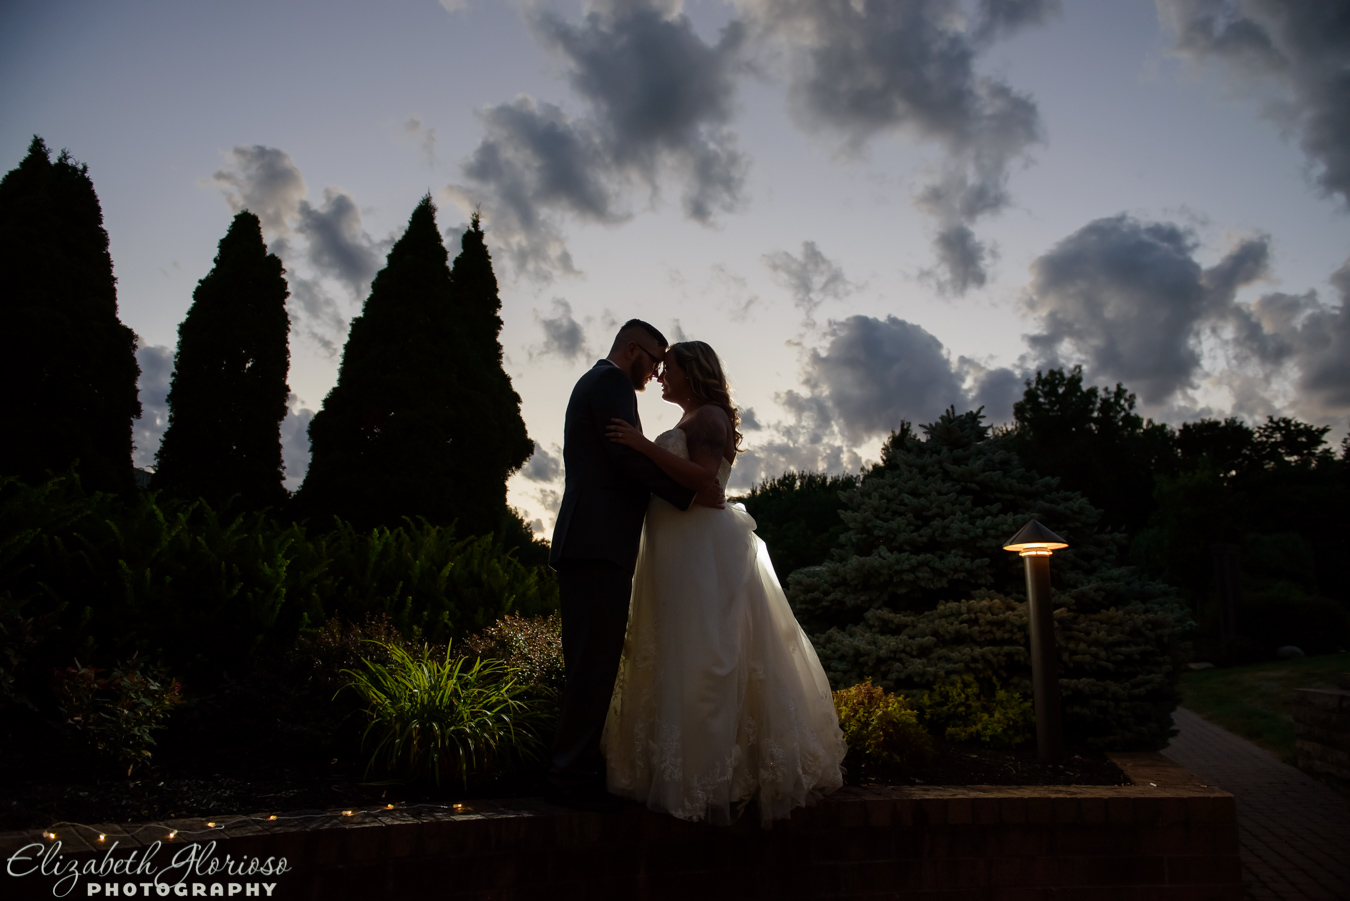 Zakovec_Wedding_Glorioso_Photography_Cleveland-159